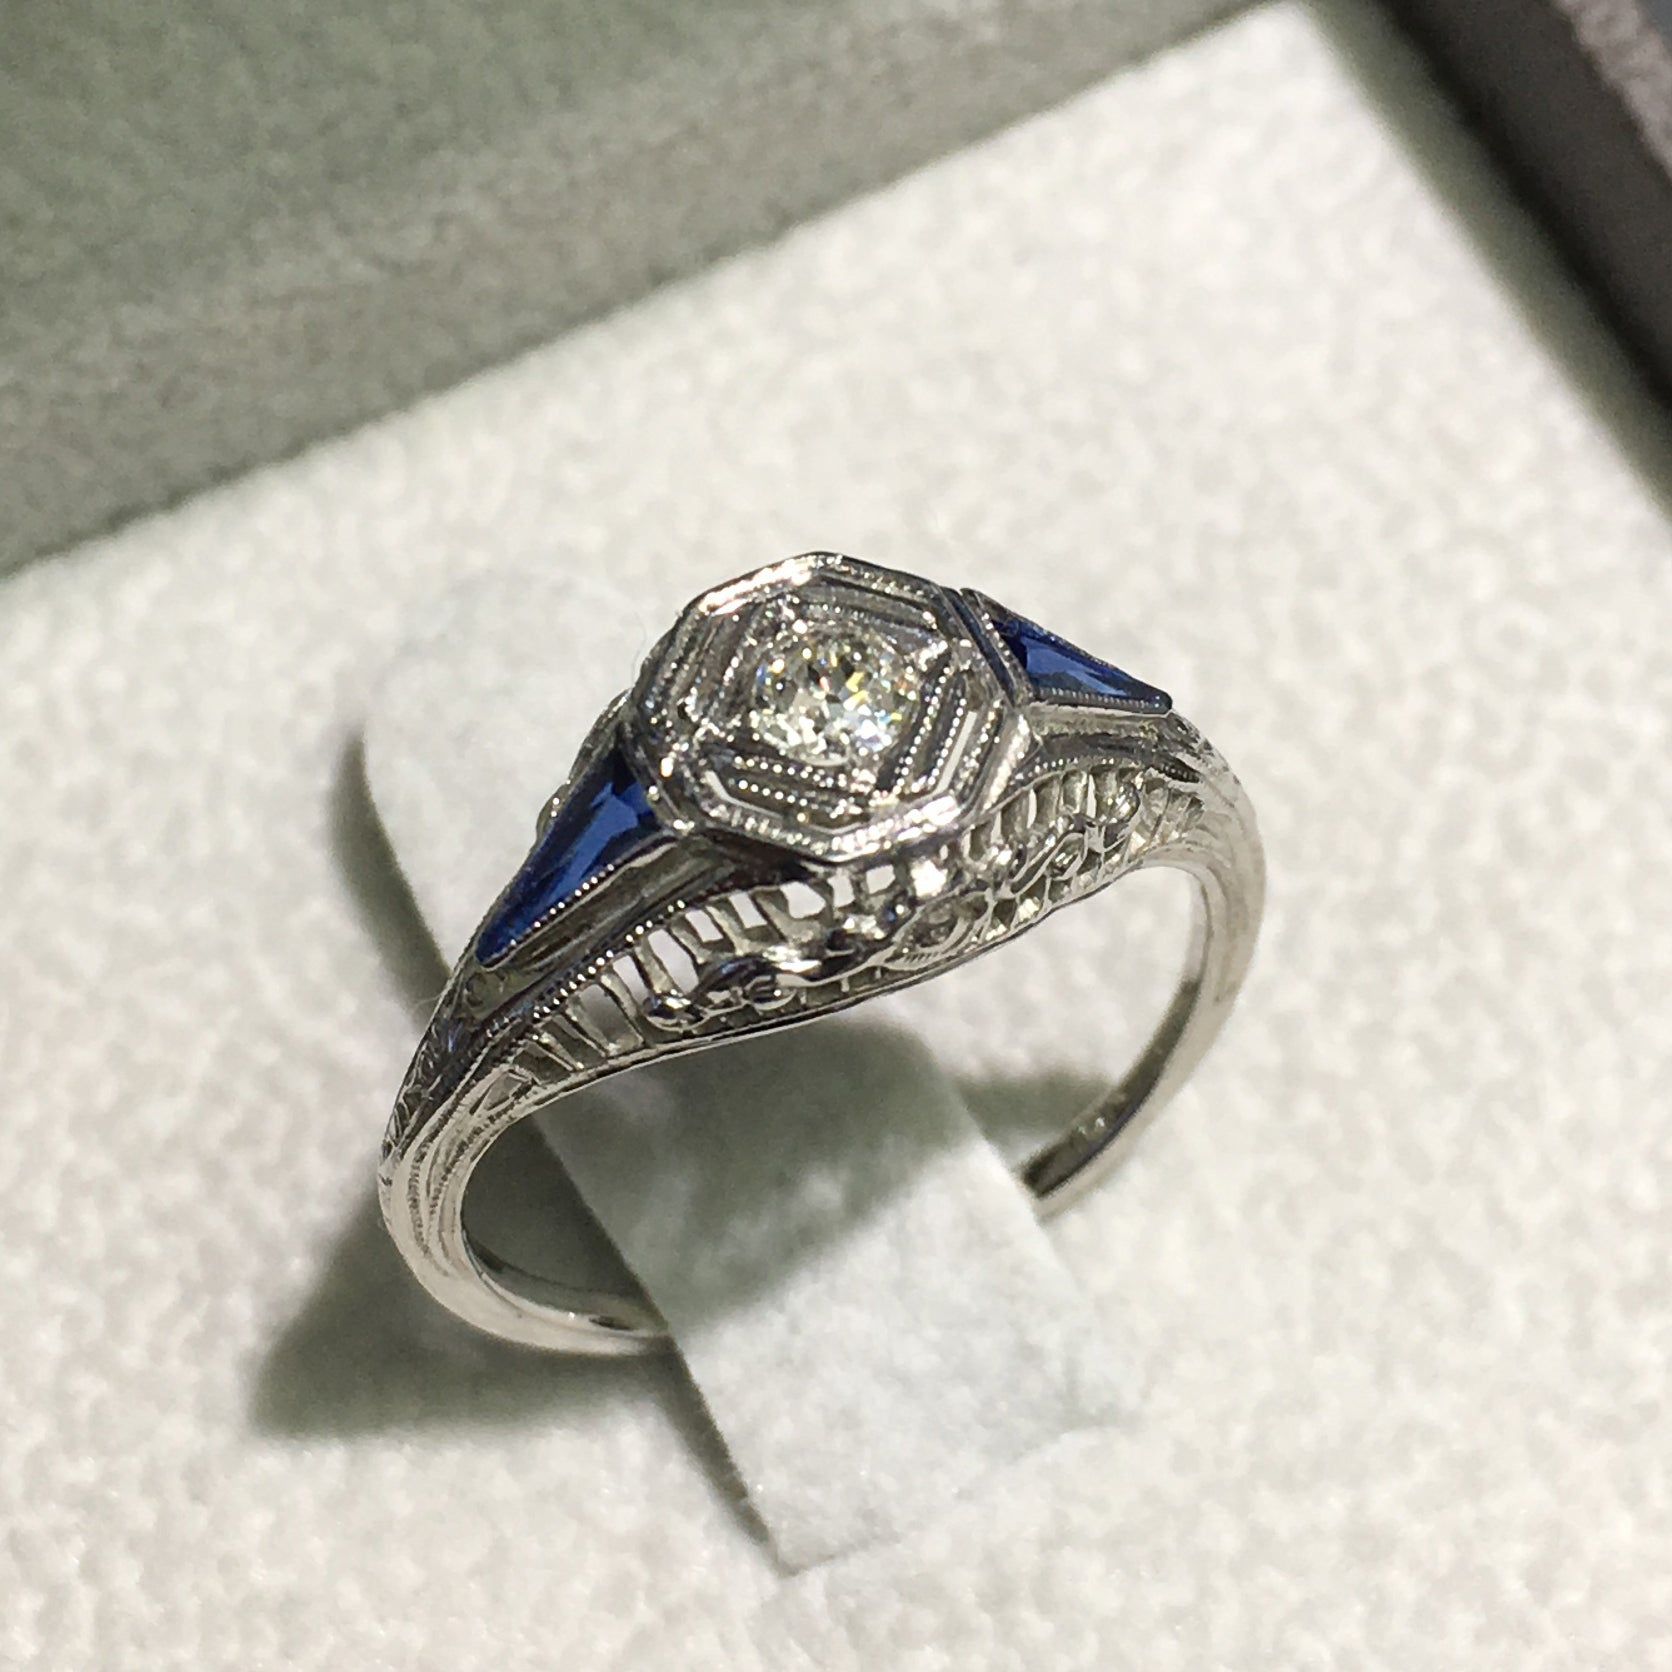 Lady's Antique Engagement - 18K White Gold set Diamond and Two Blue Sapphire #J99128